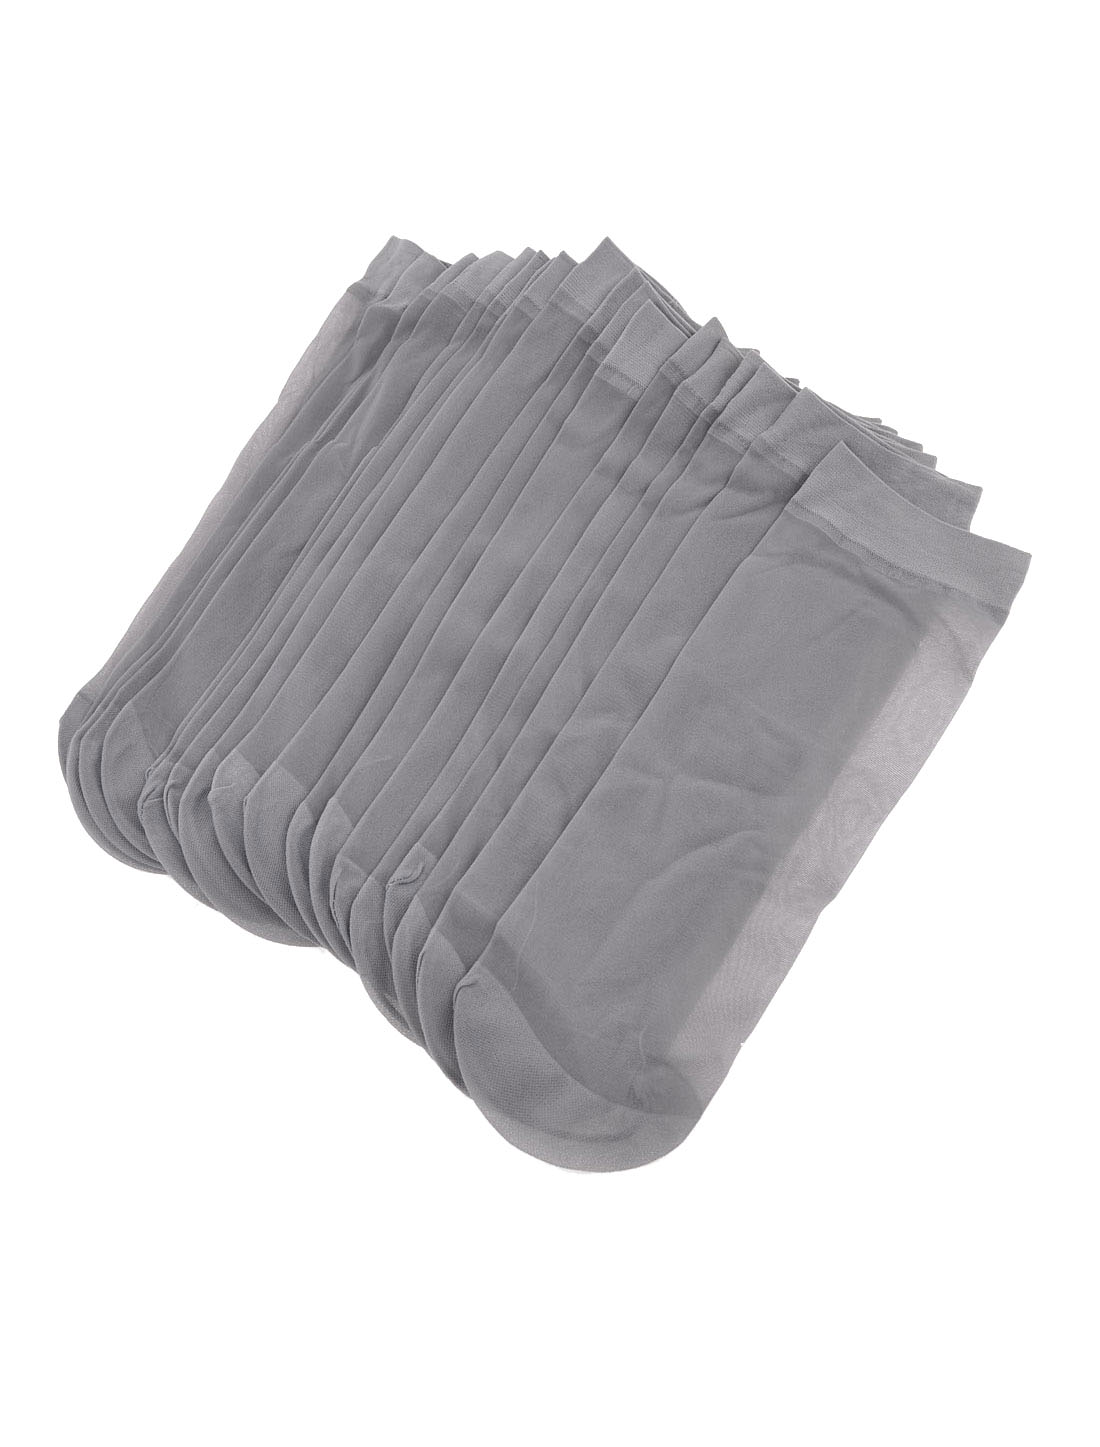 10 Pairs Transparent Polyester Gray Elastic Sheer Socks for Women Lady